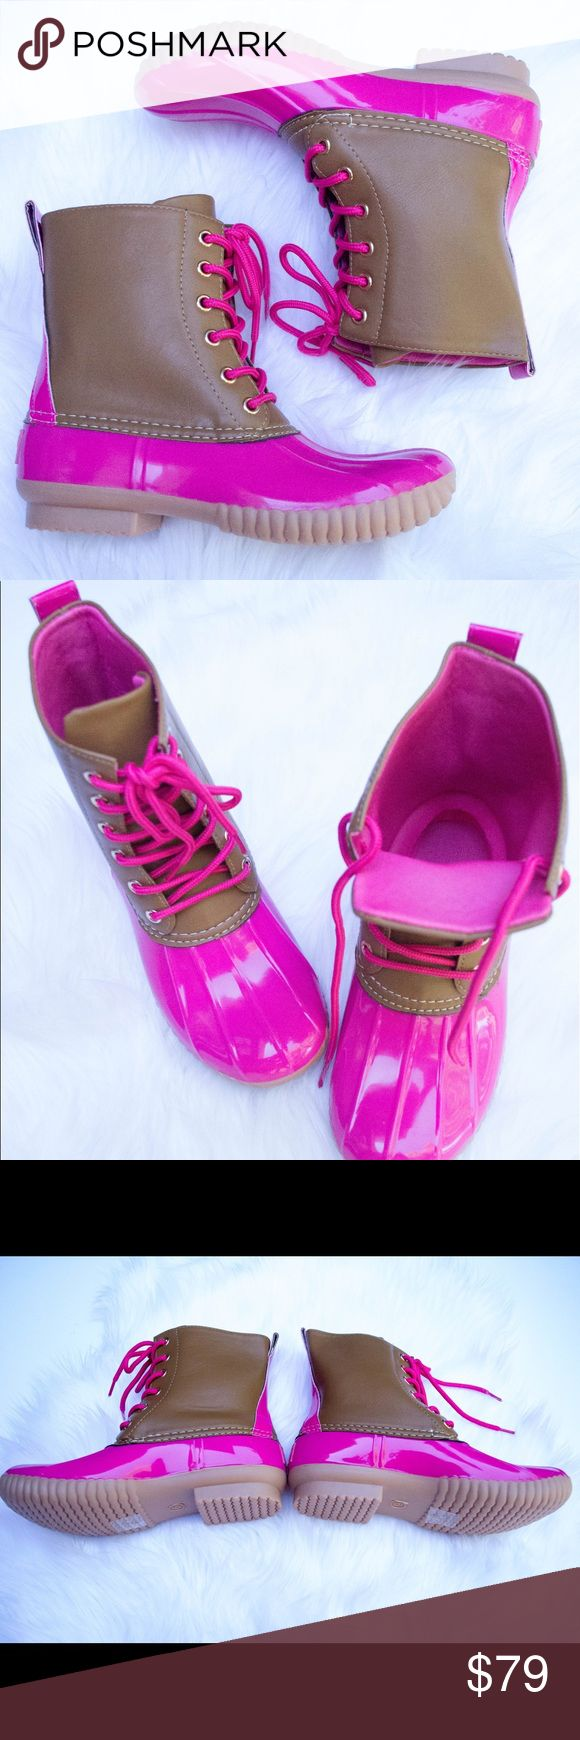 Hot Pink Duck Boots This listing is for leopard print. These are selling like crazy for fall  $79 each or $130 for 2 pairs. Other colors available  Select lining in each boot to keep you comfy. Stitched synthetic rubber sole for durability and grip  Price FIRM unless bundled. Kyoot Klothing Shoes Winter & Rain Boots